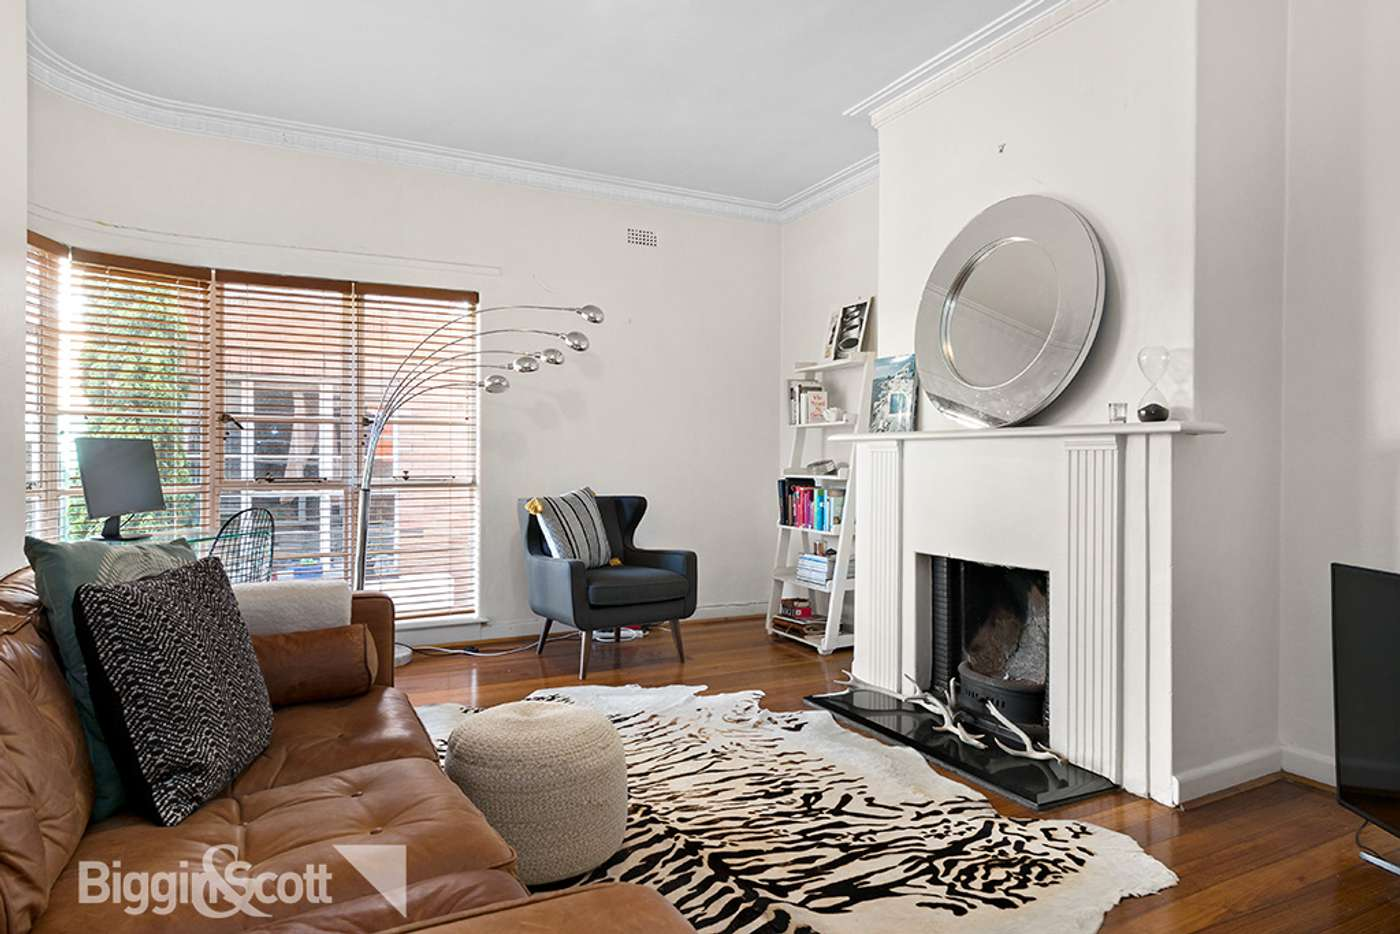 Main view of Homely apartment listing, 1/25 Adams Street, South Yarra VIC 3141